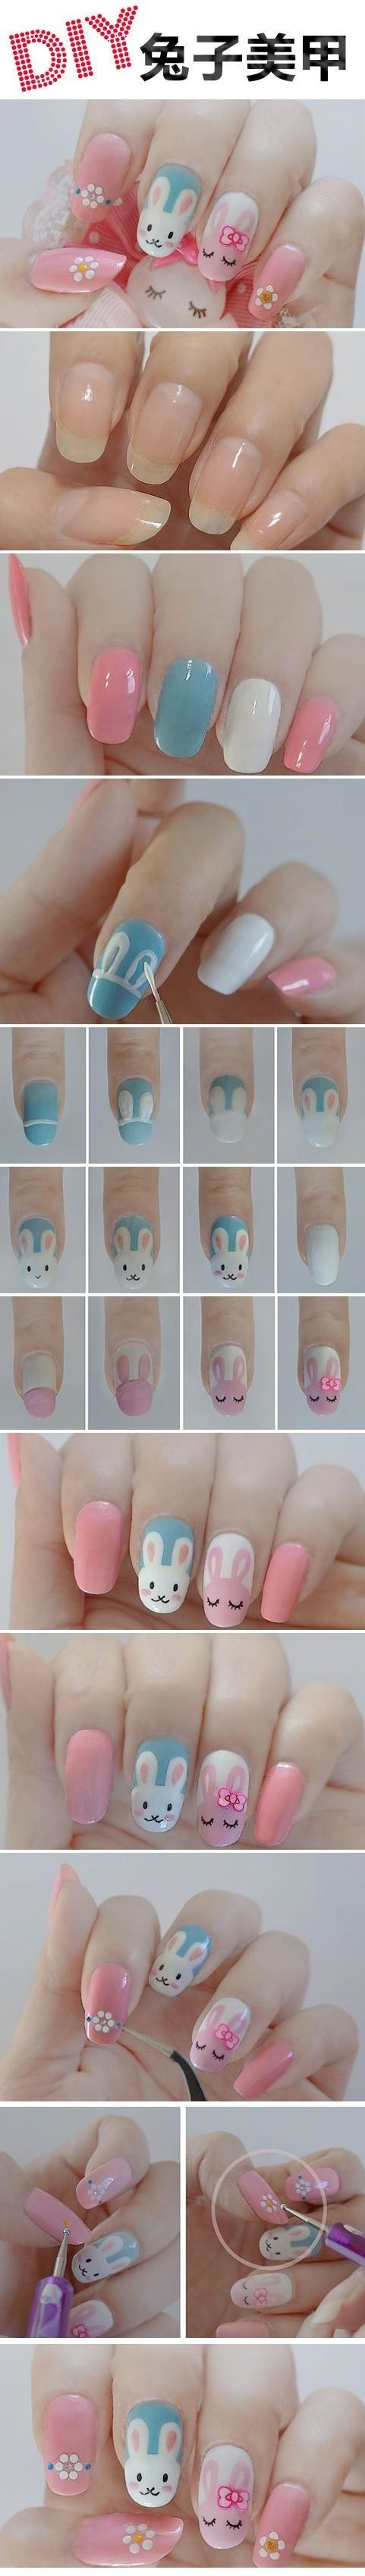 103 best Makeup ~ Nails images on Pinterest | Art ideas, Beauty ...